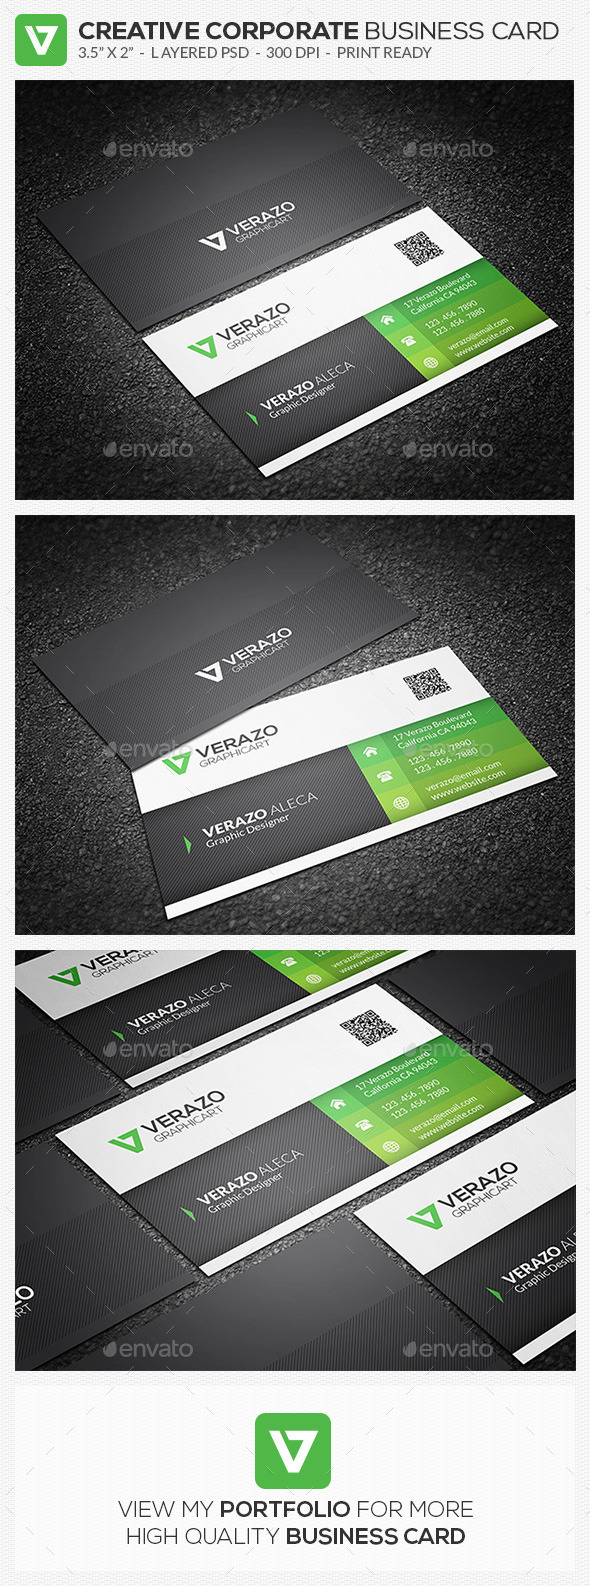 Green Corporate Business Card 63 - Corporate Business Cards